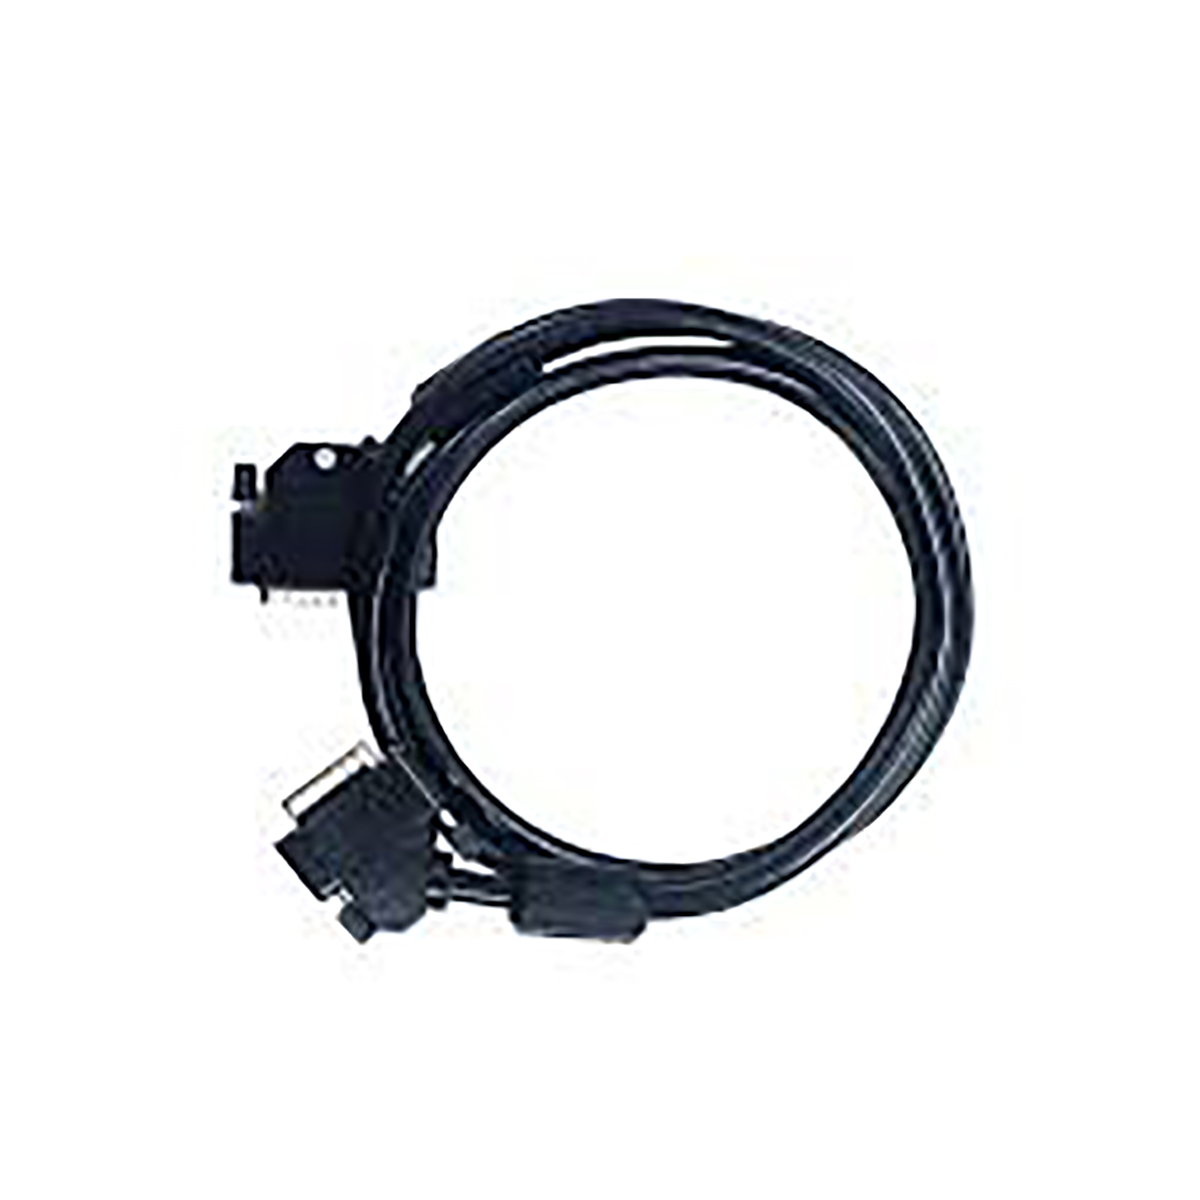 Brother PC5000 Parallel connection Cable